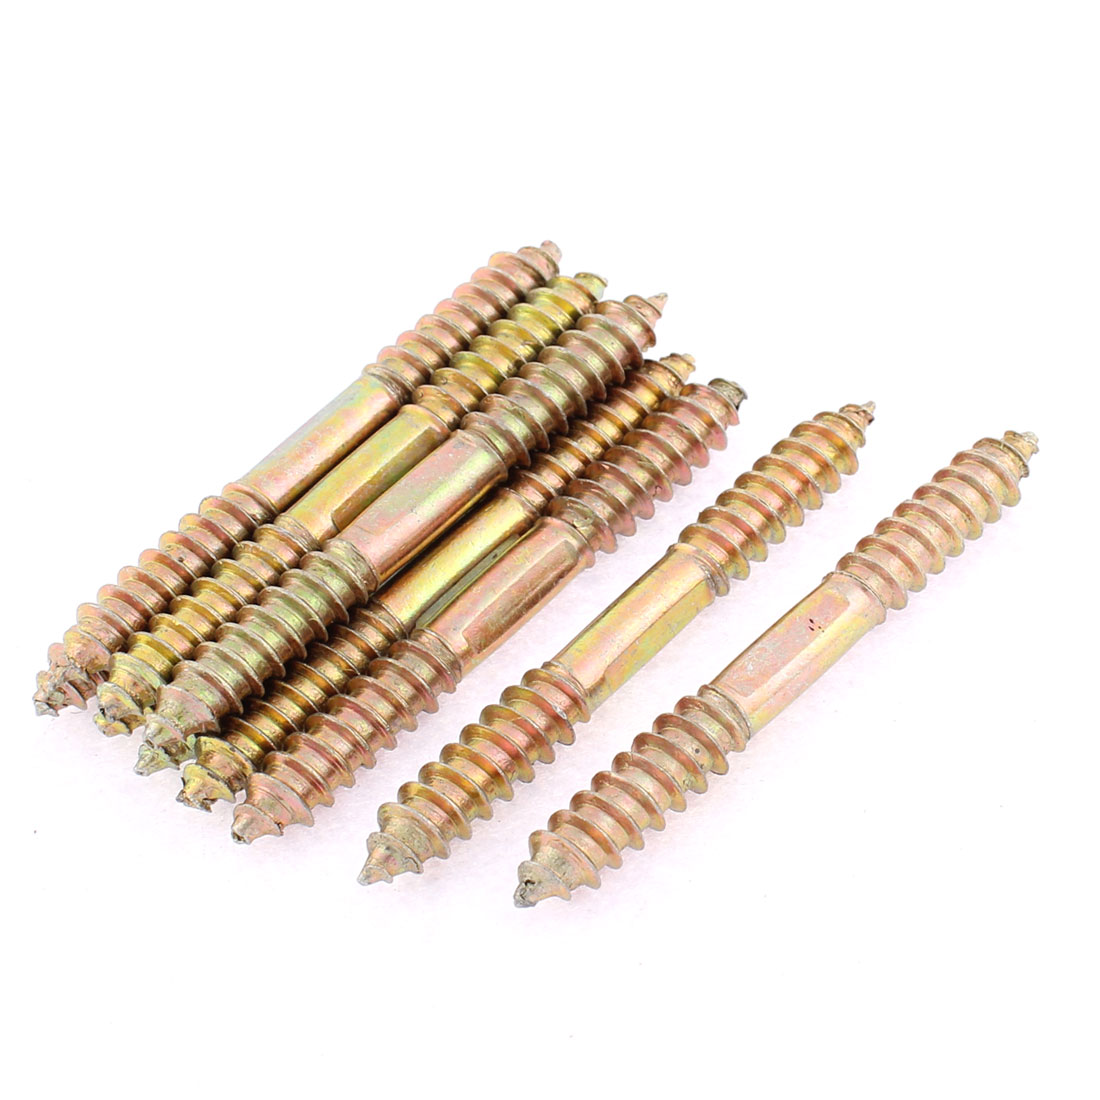 10Pcs M8 x 73mm Double Ended Metal Full Thread Self Tapping Threaded Rods Screw Bars Studs Fasteners